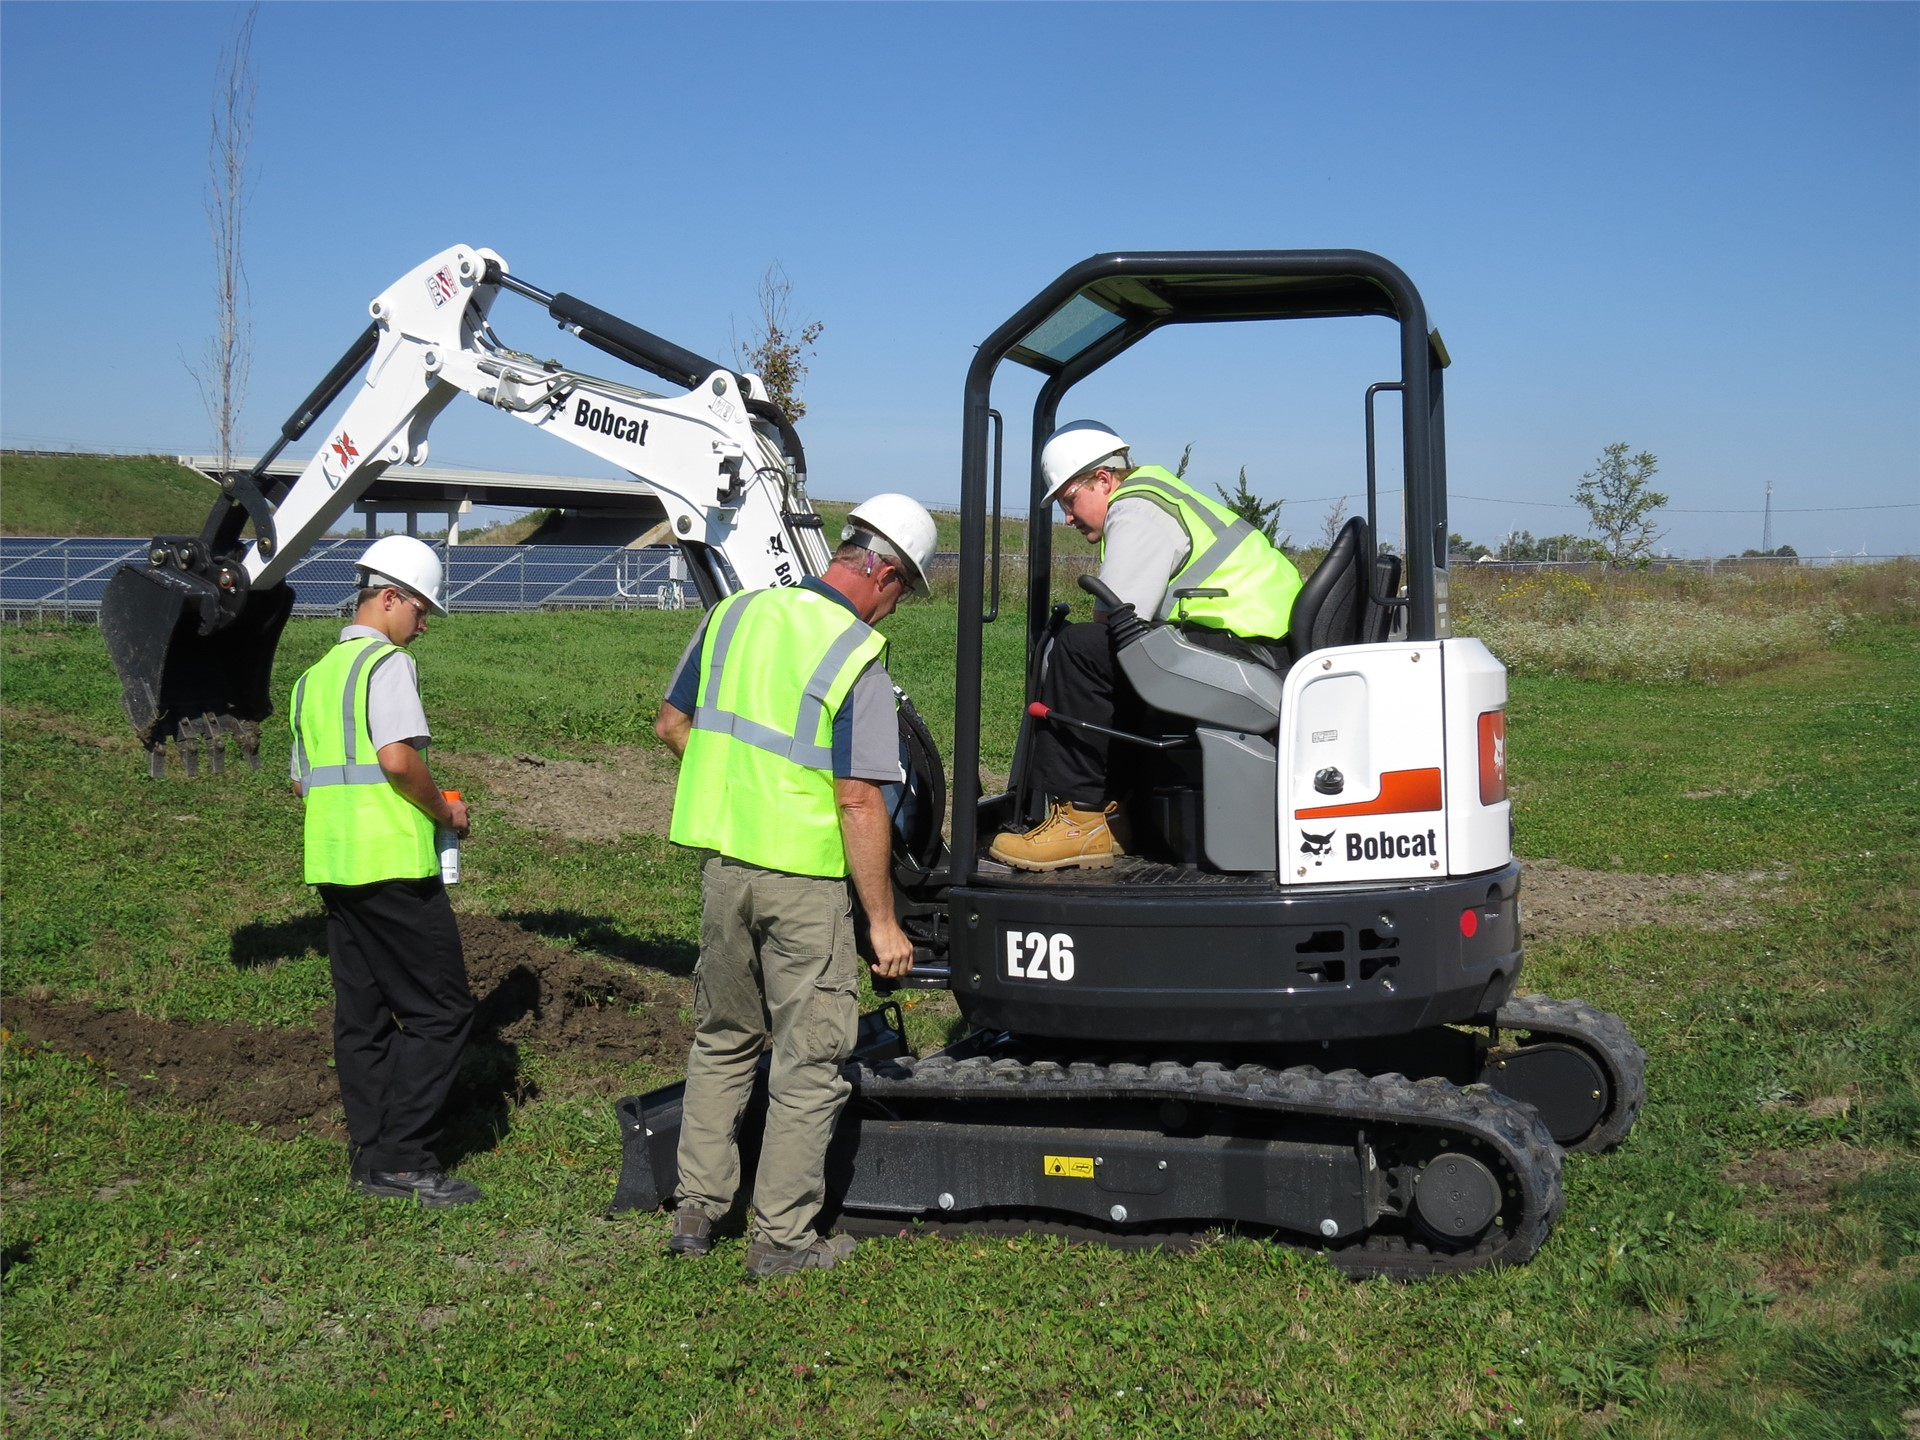 Students using Bobcat while instructor watches